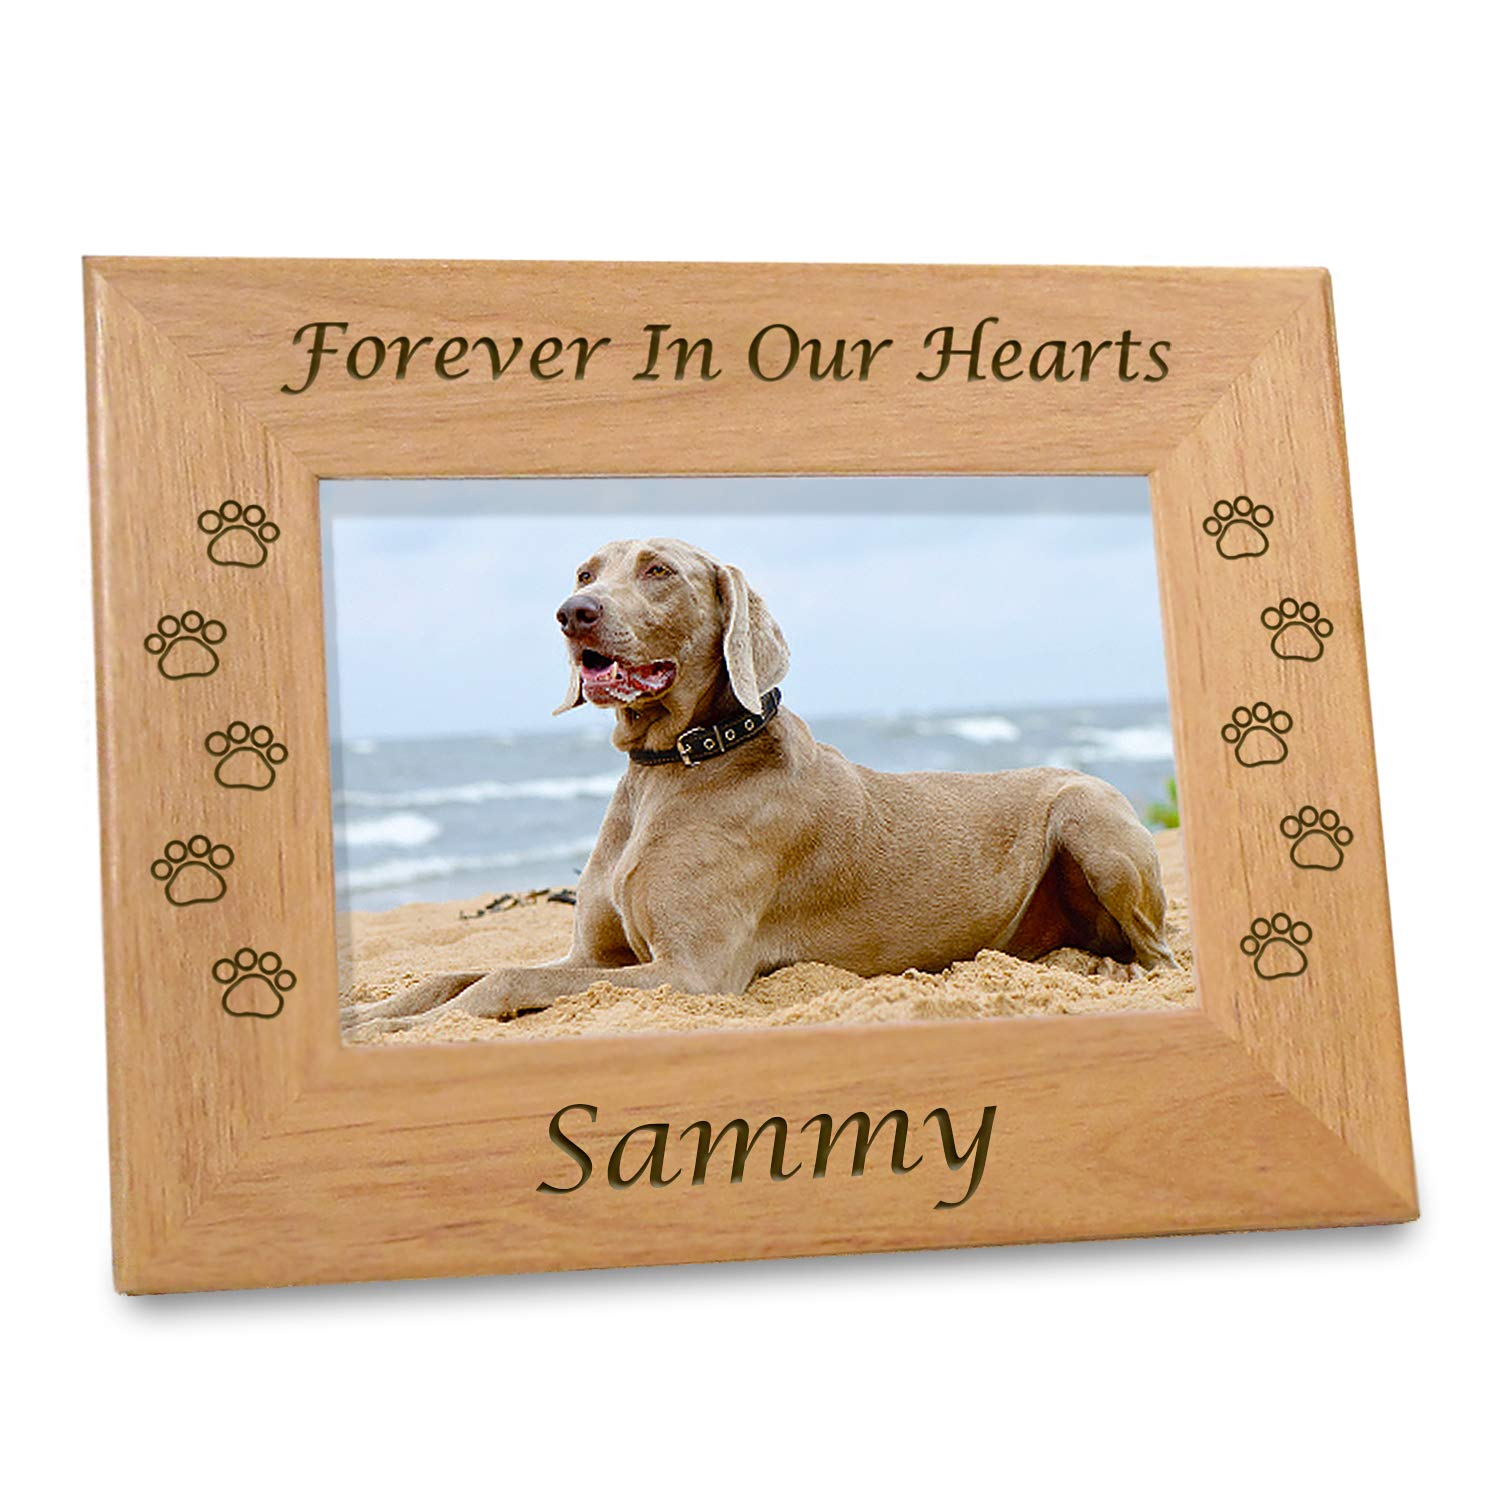 """Etched In My Heart Pet Memory Frame Personalized Dog Memorial Gifts (4x6 Photo) w/ """"Paw Prints"""" Custom Message on Rustic Alder Wood for Loving Memorabilia"""